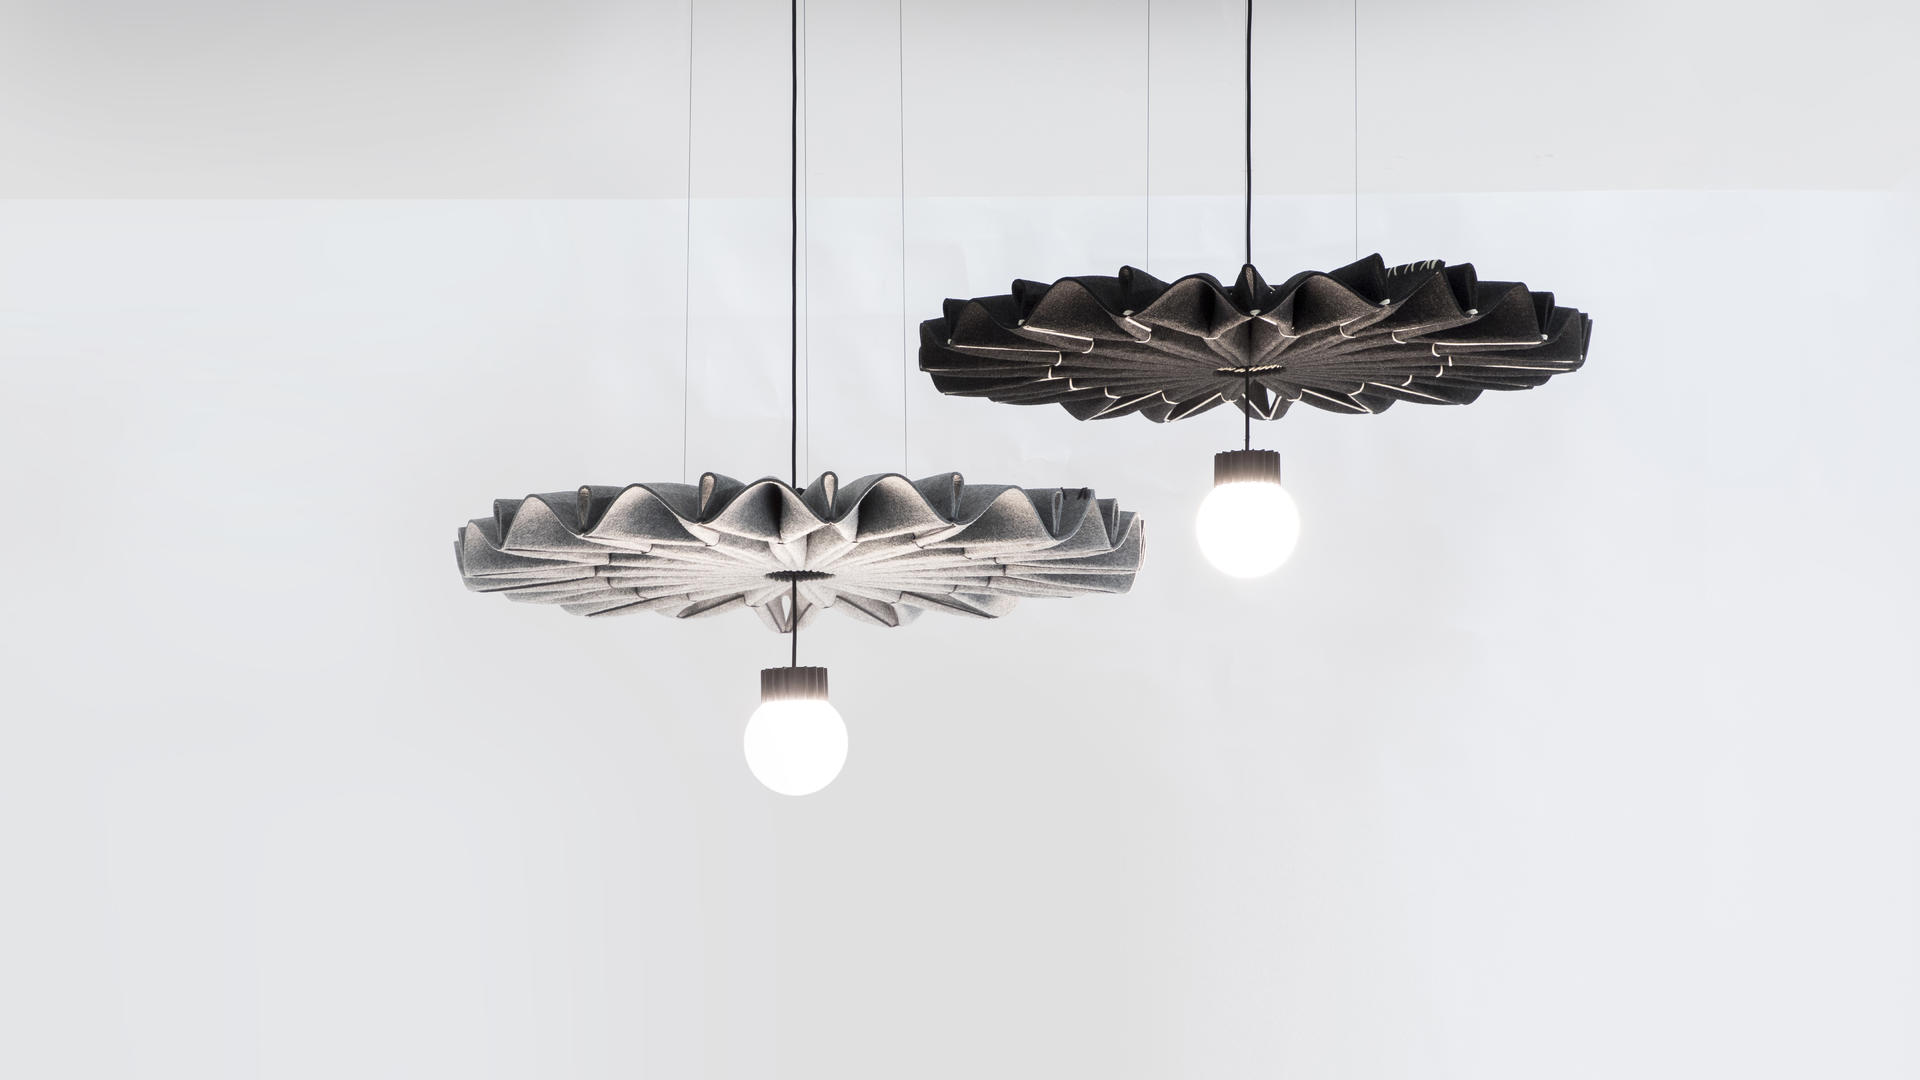 Buzzi & Buzzi Lighting buzzipleat led, sculptural acoustic pendant lighting